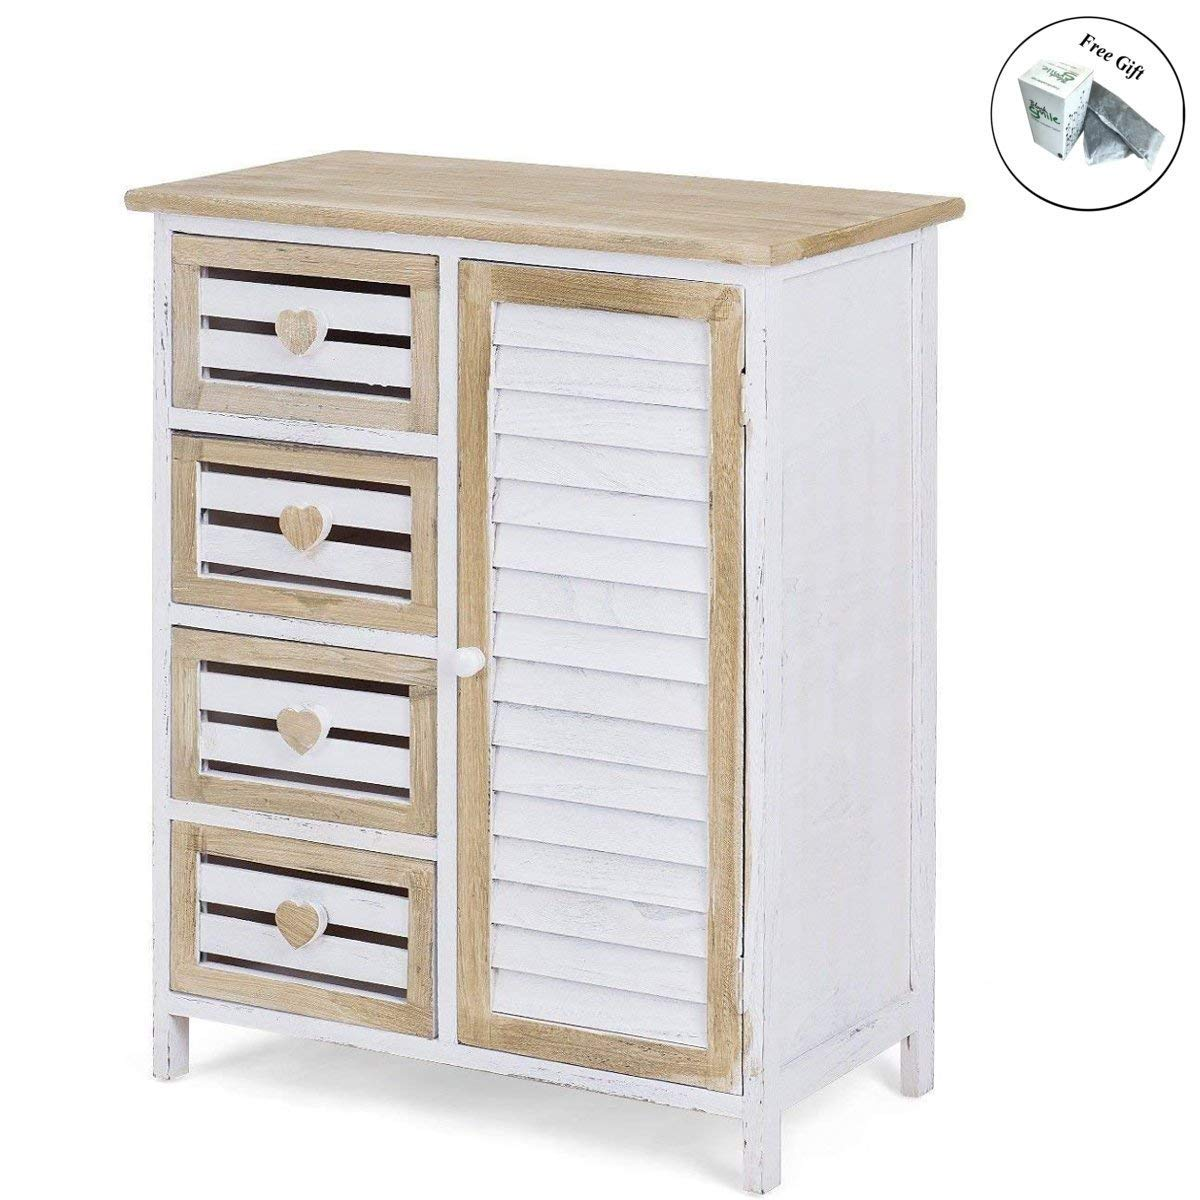 Get Quotations 4 Bin Type Drawers Solid Wood Storage Cabinet Cupboard Home Bathroom Furniture Free E